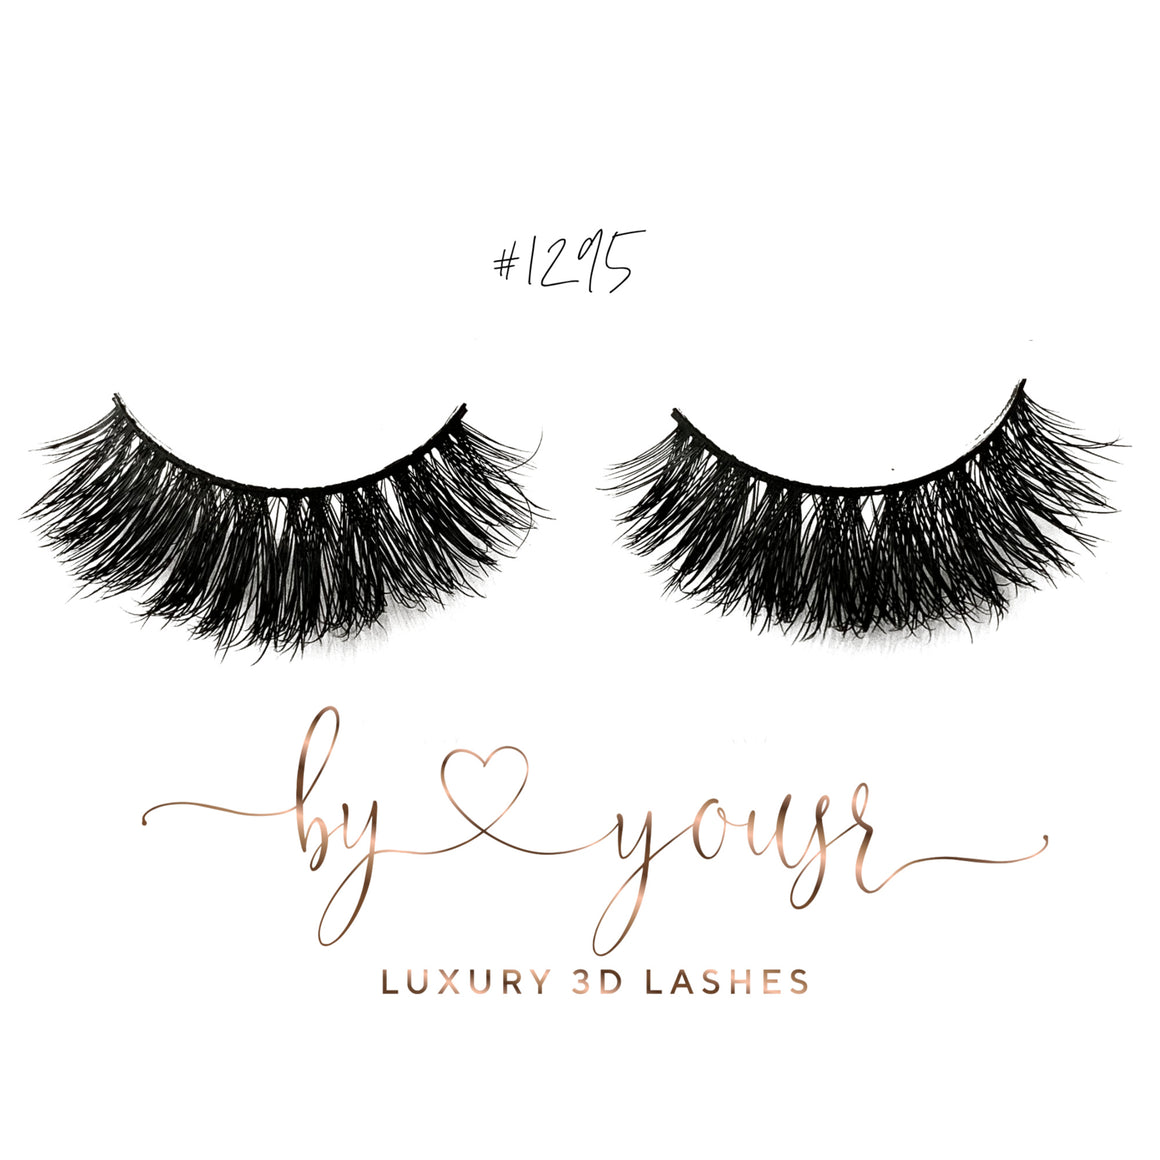 New LUXURY 3D Lashes By Yousr #1295